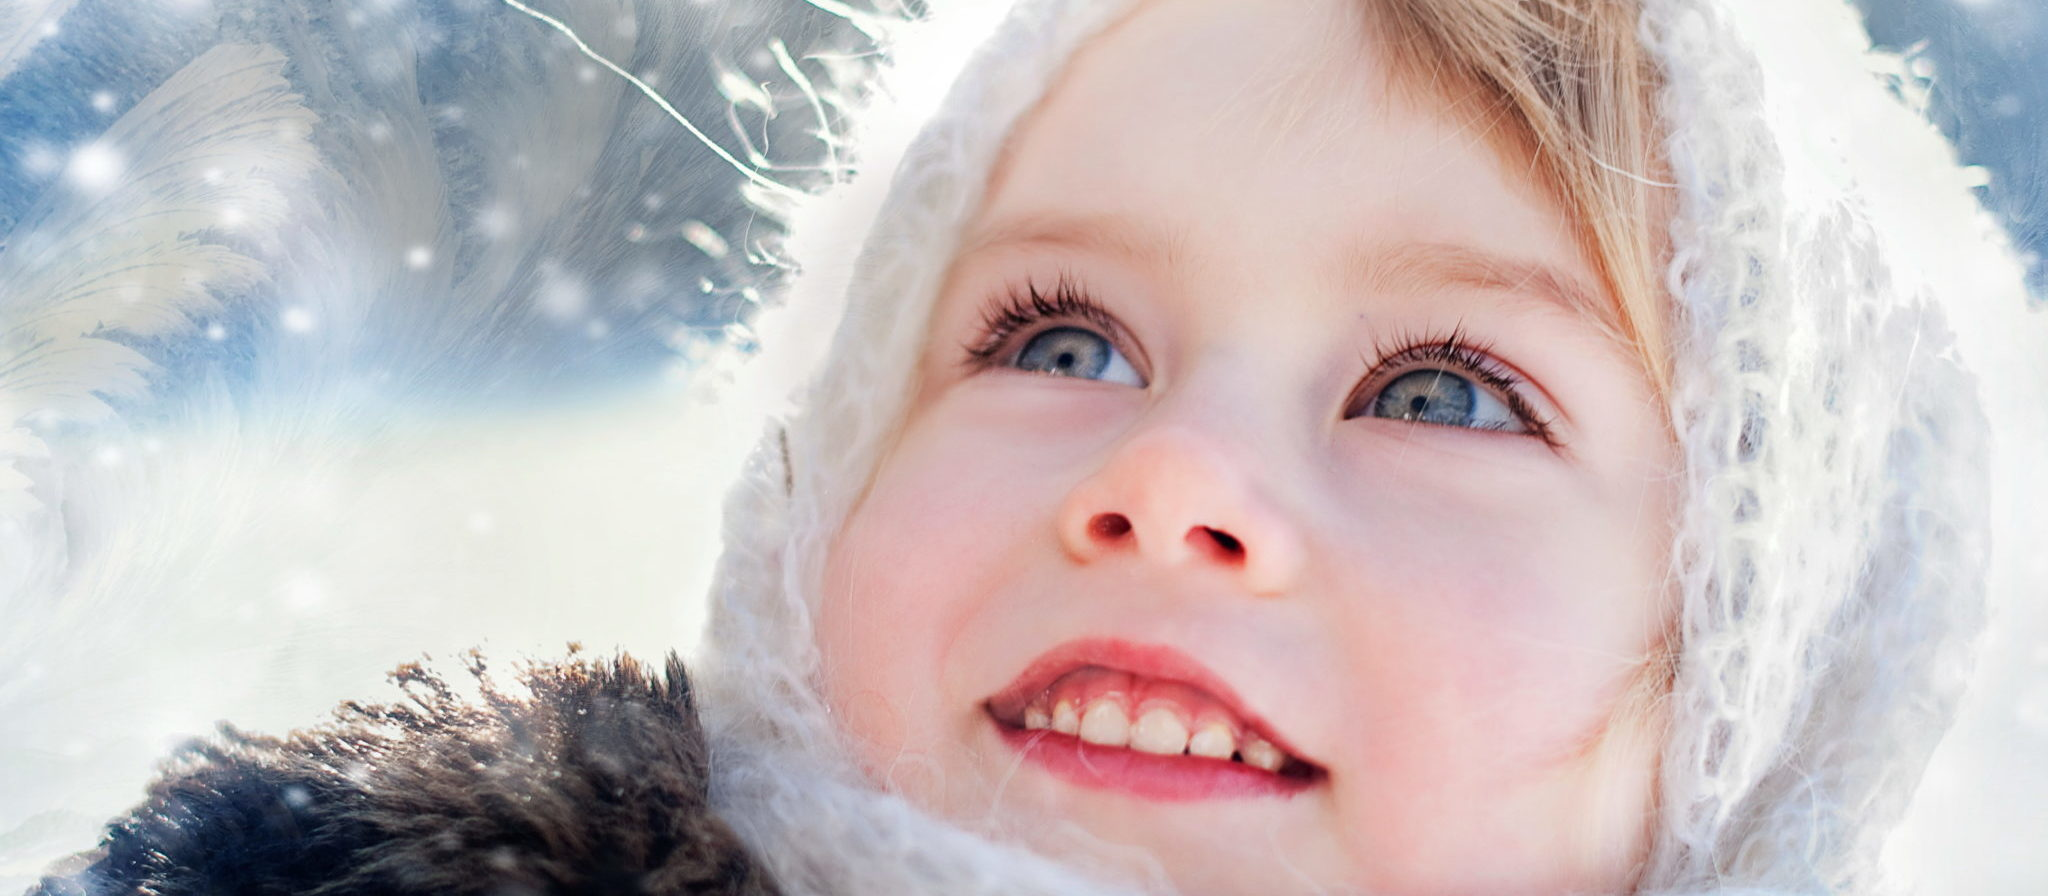 The first snowfall is one that will absolutely last forever. Plus, you can get great pictures of your baby for a scrapbook!